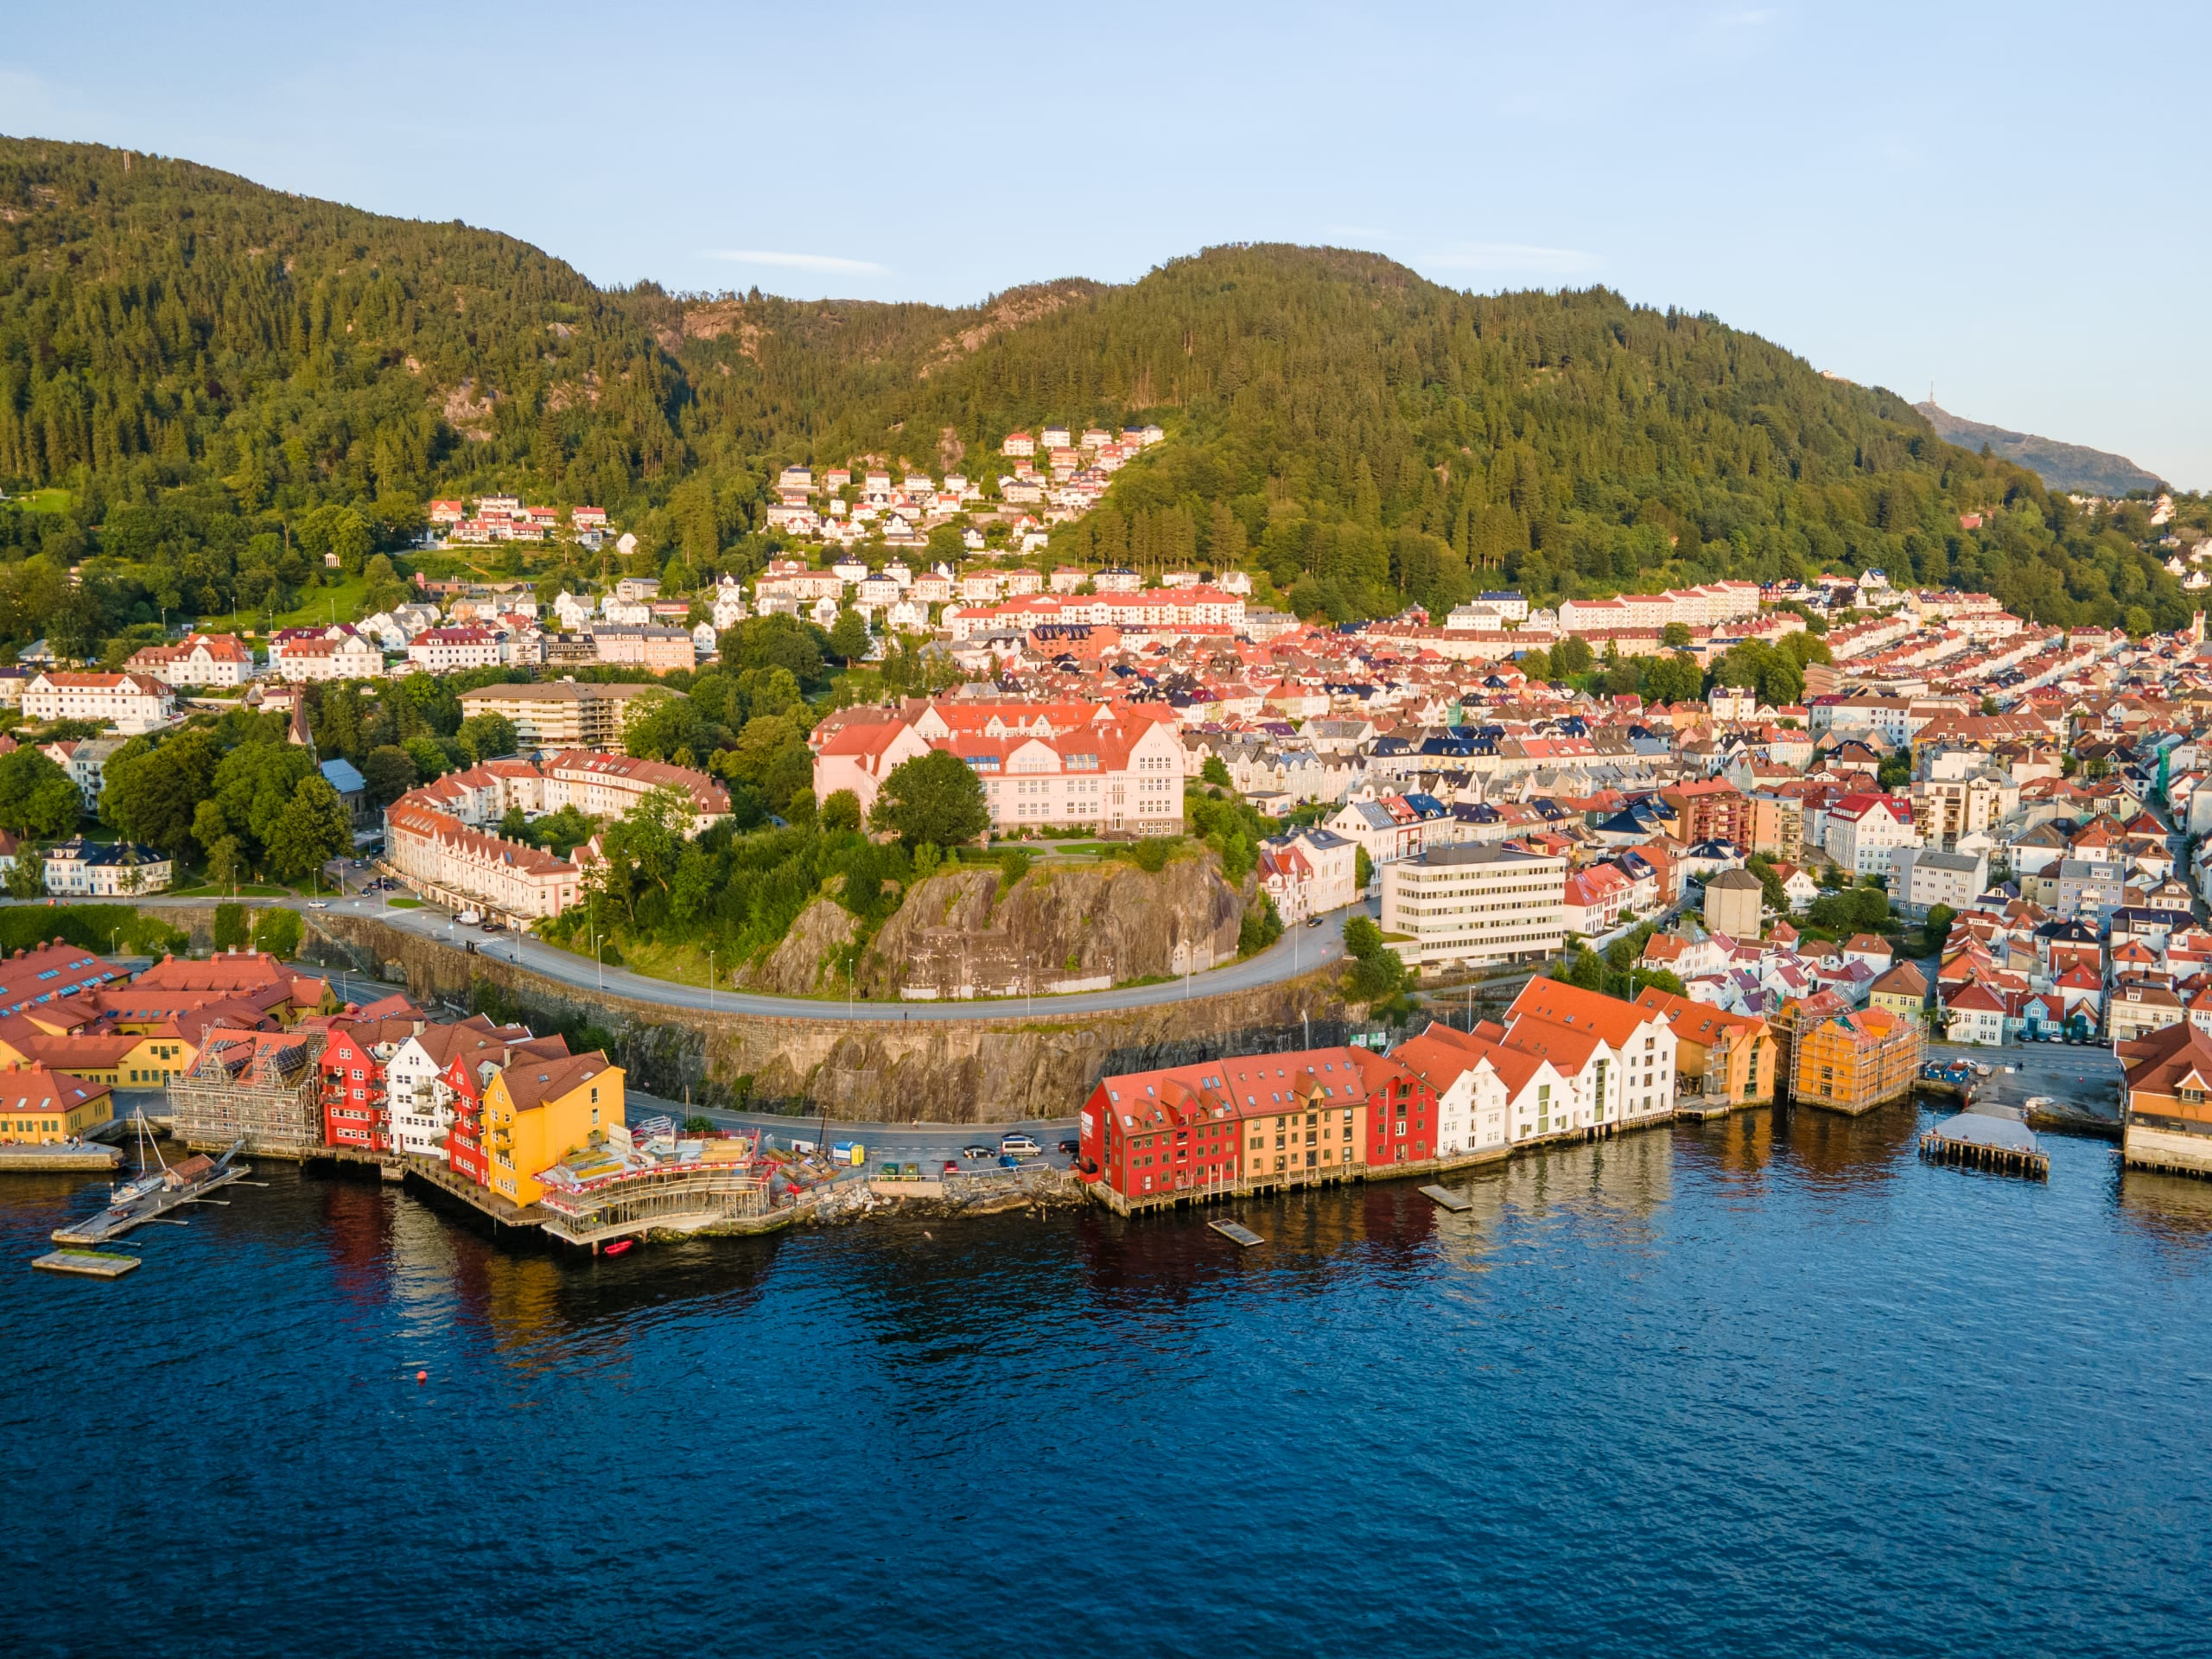 Skuteviken boathouses from above